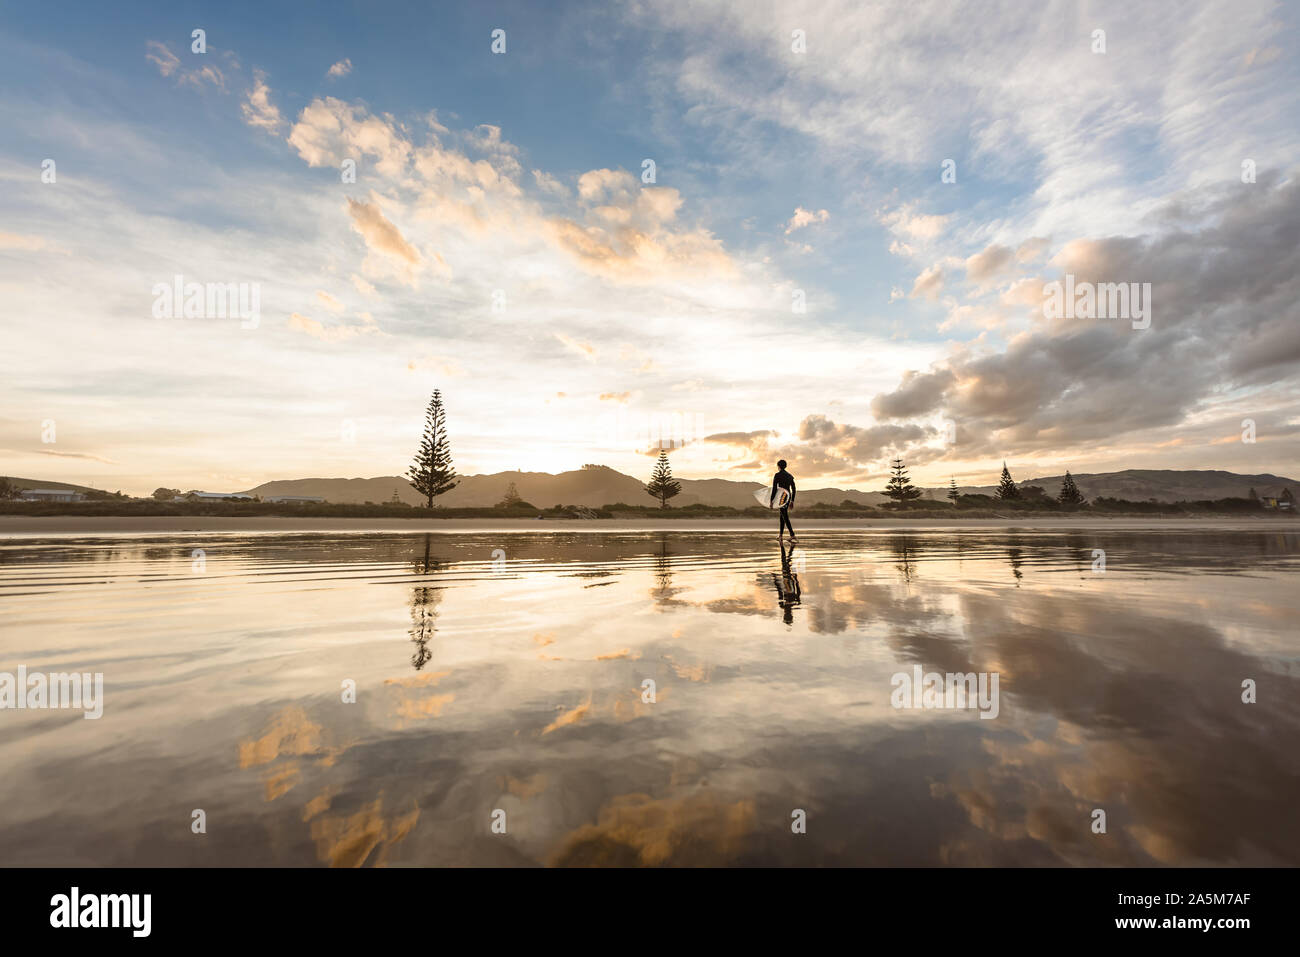 Teen boy with surfboard walking on a beach at sunset Stock Photo